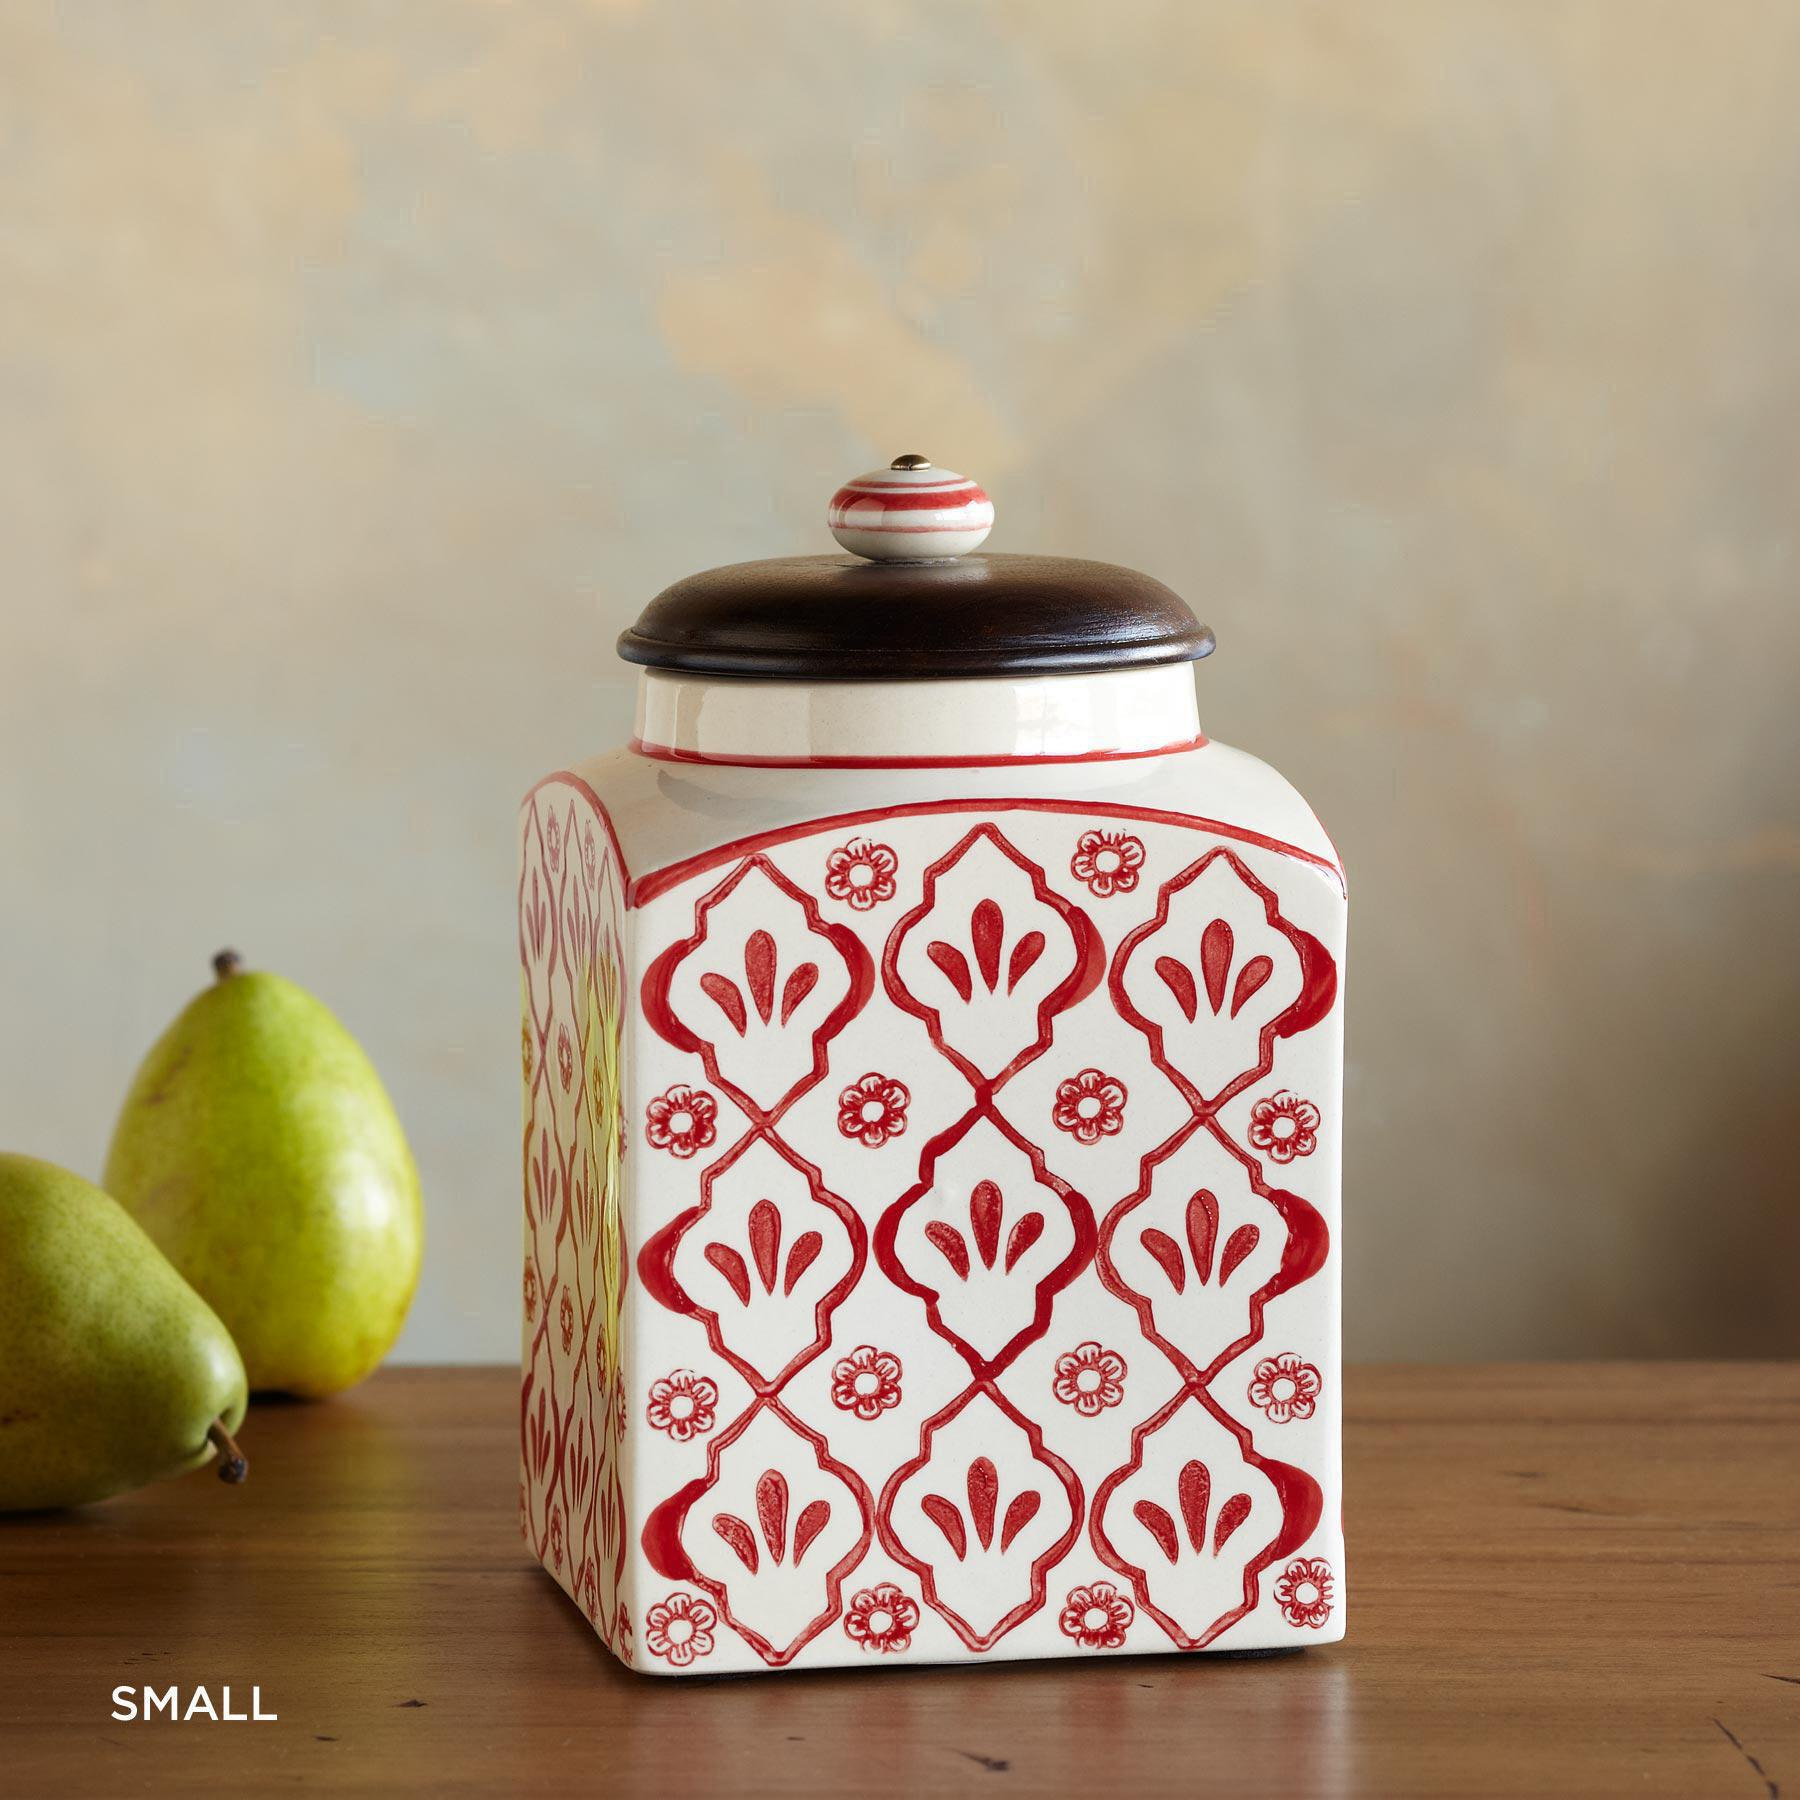 RED FLOWER CANISTERS: View 2